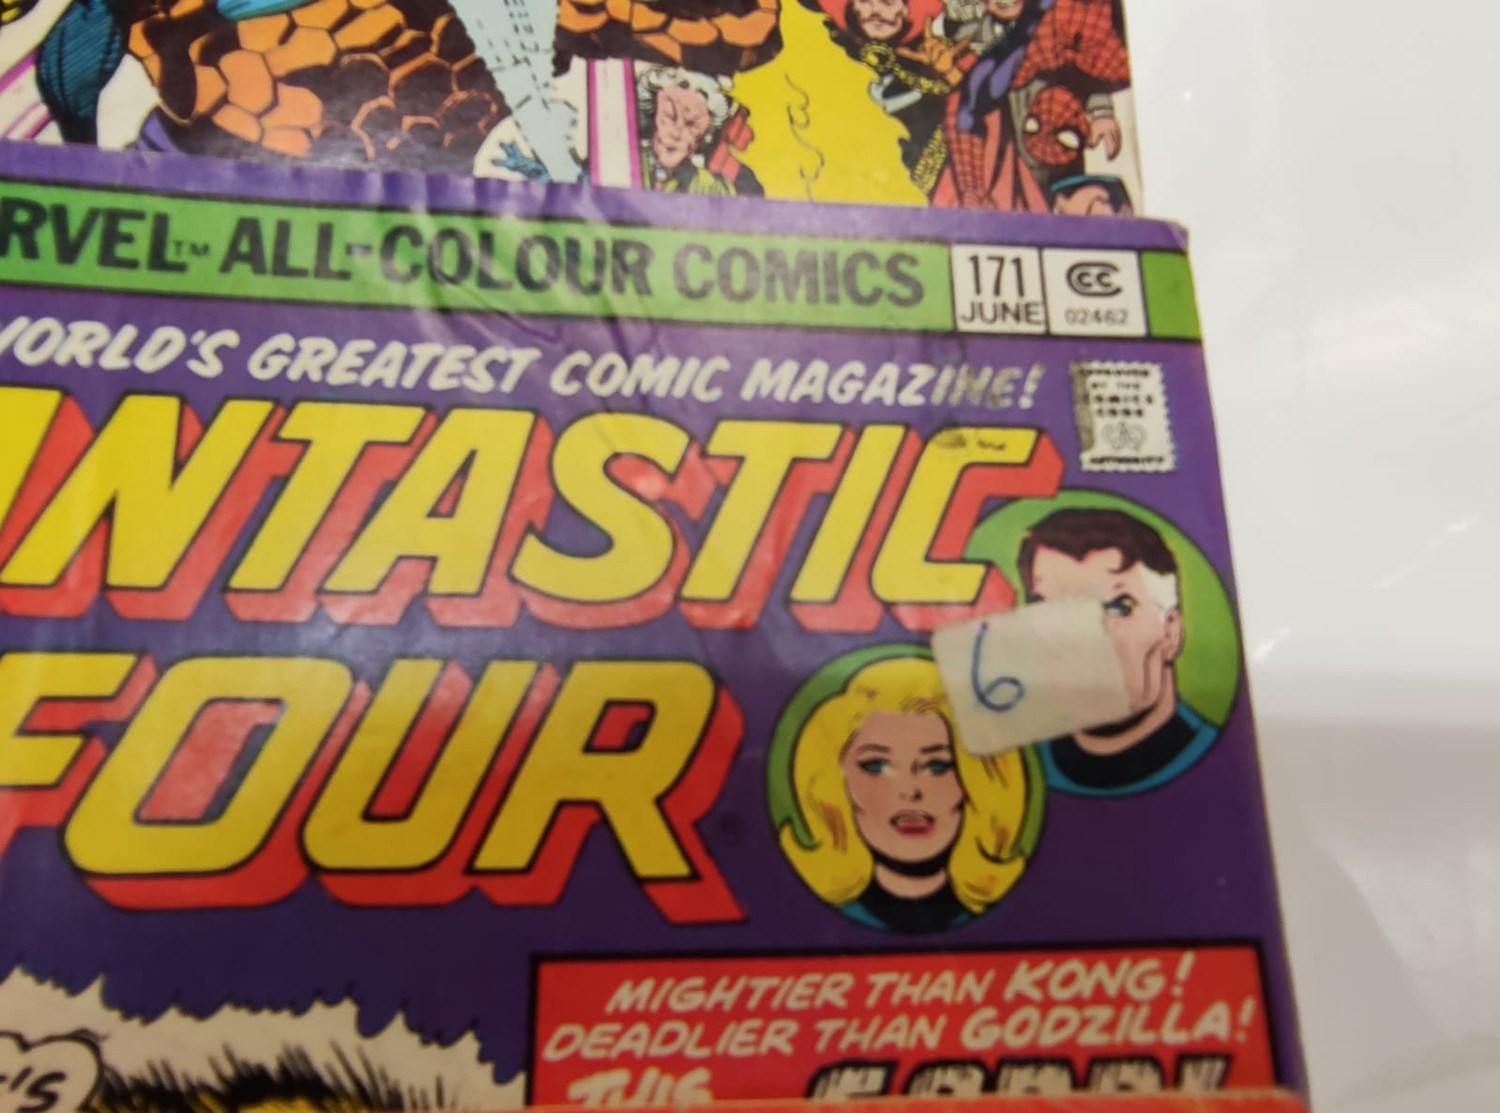 30x Marvel Fantastic four mid 1970s editions. Used, in good condition. - Image 11 of 17